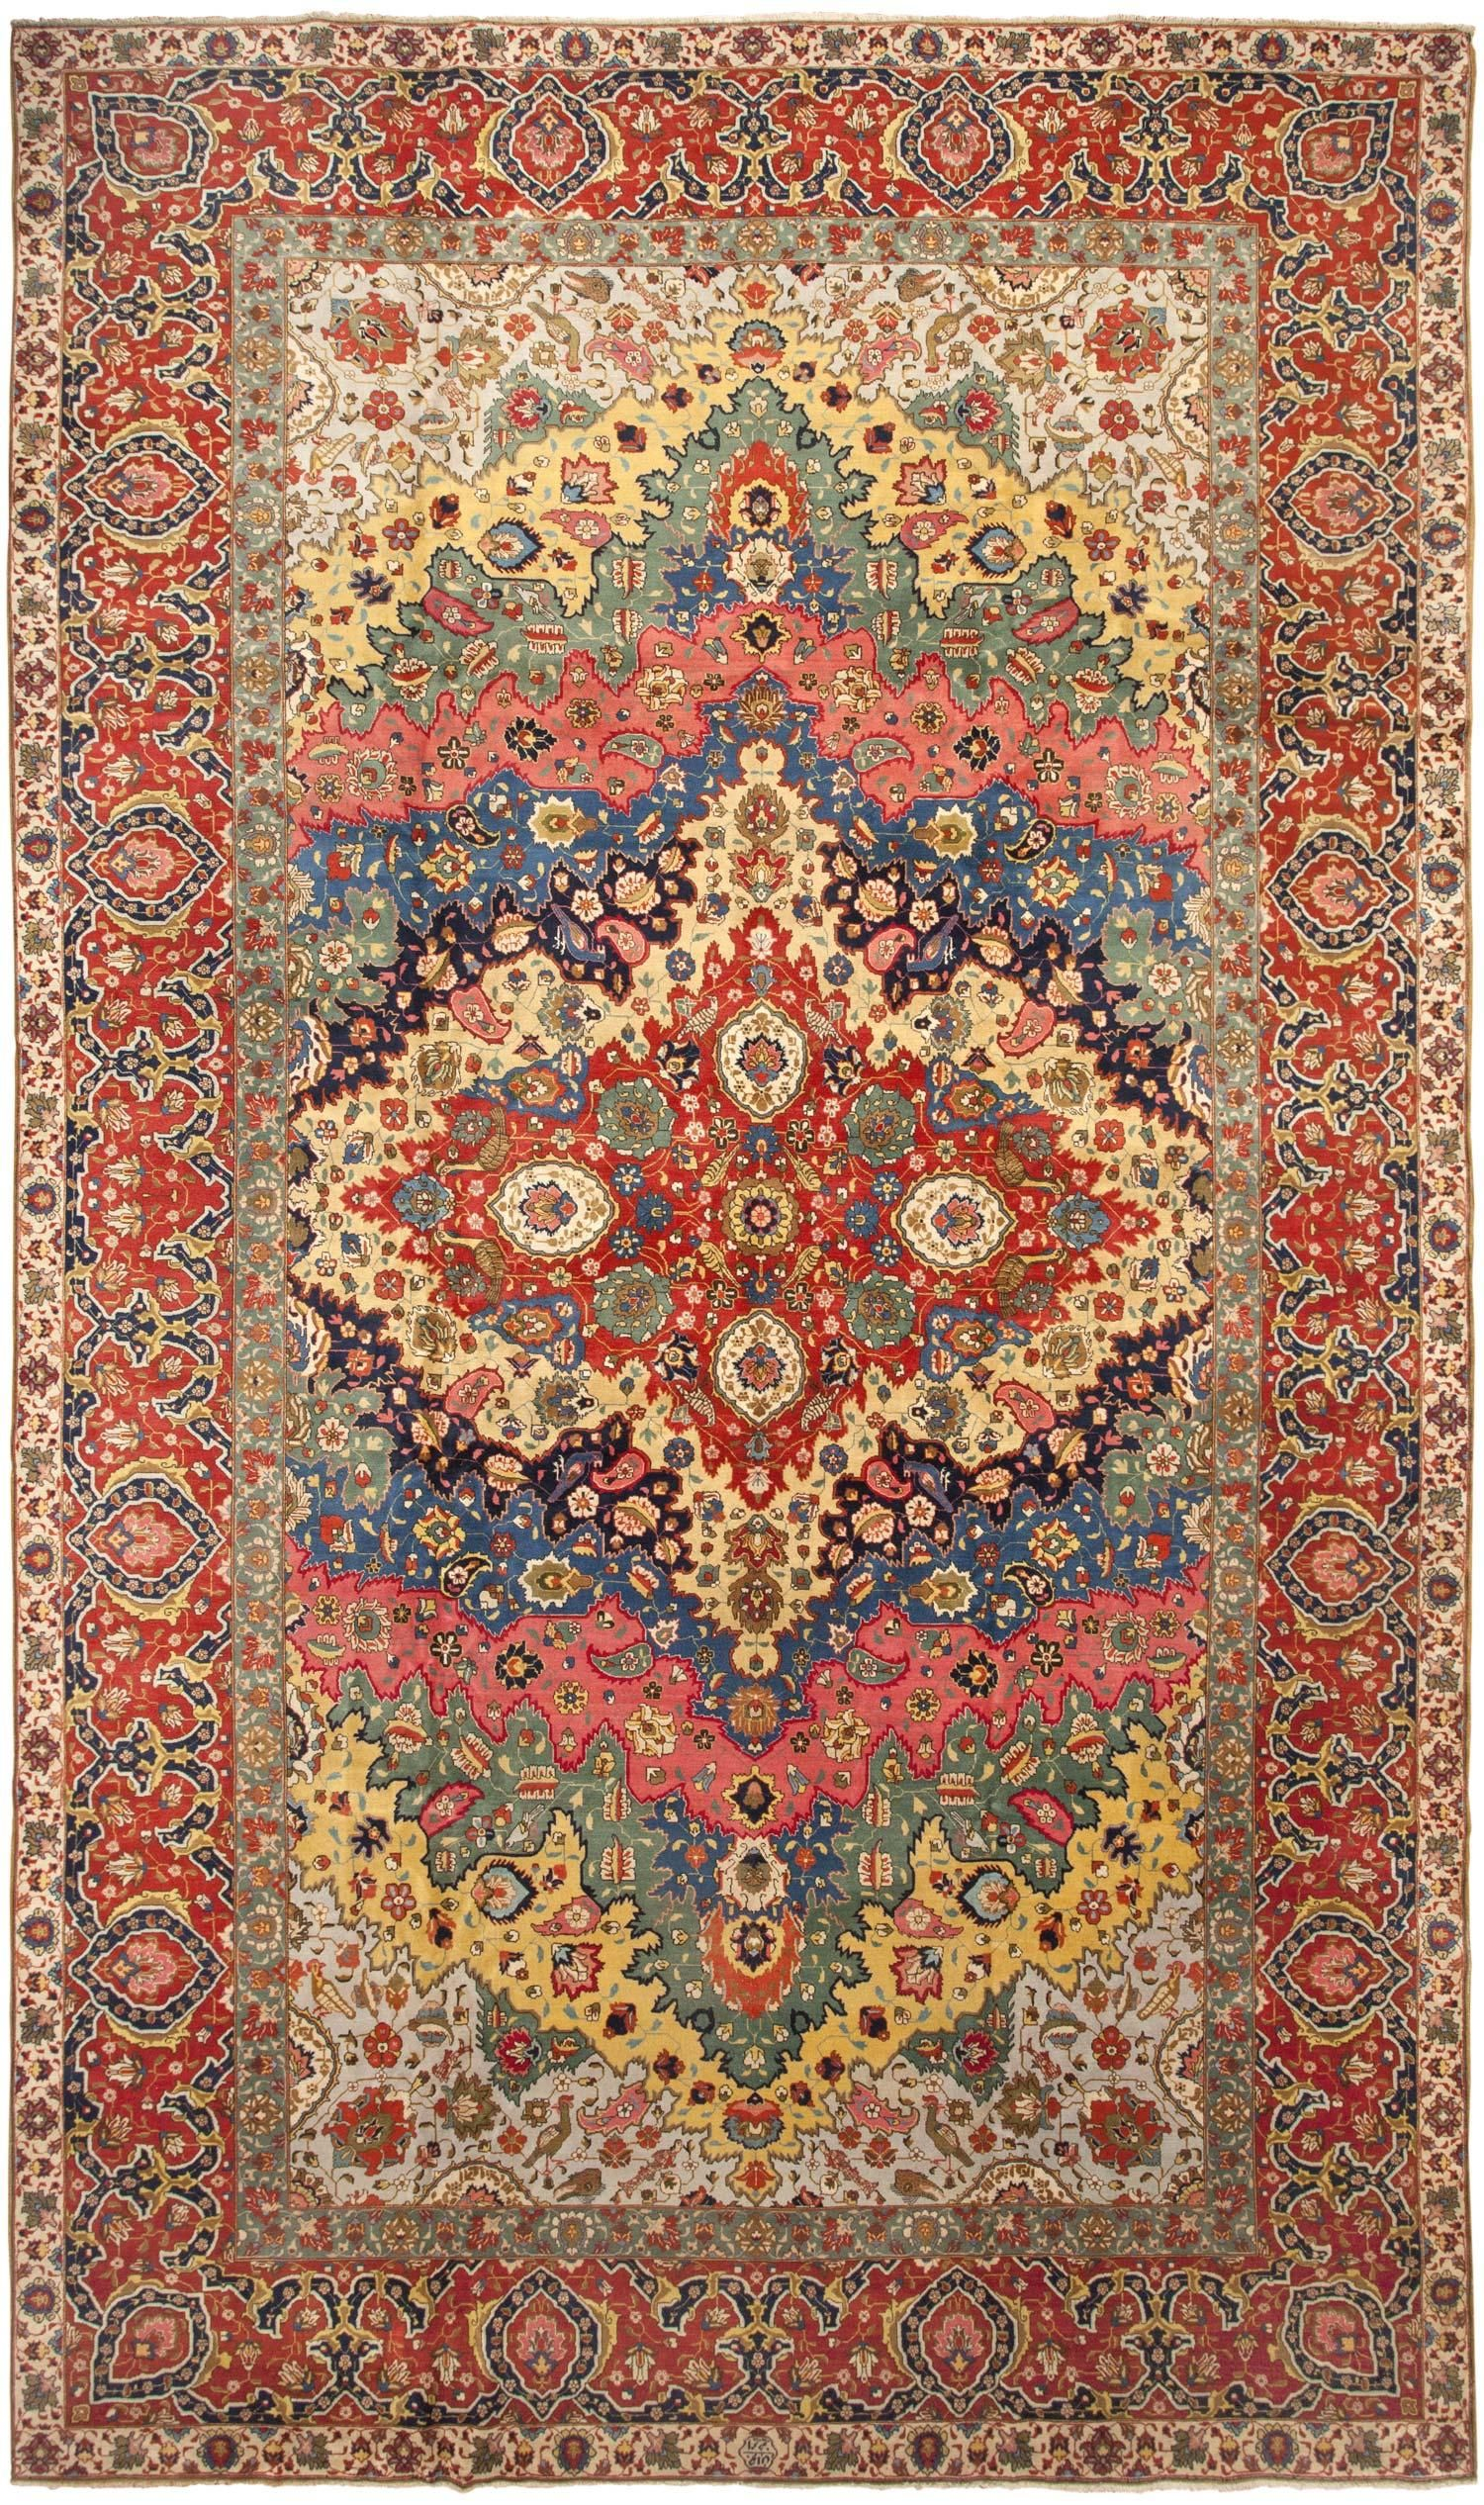 Antique persian tabriz rug its hard to go wrong when you pull antique persian tabriz rug its hard to go wrong when you pull your color scheme baanklon Gallery